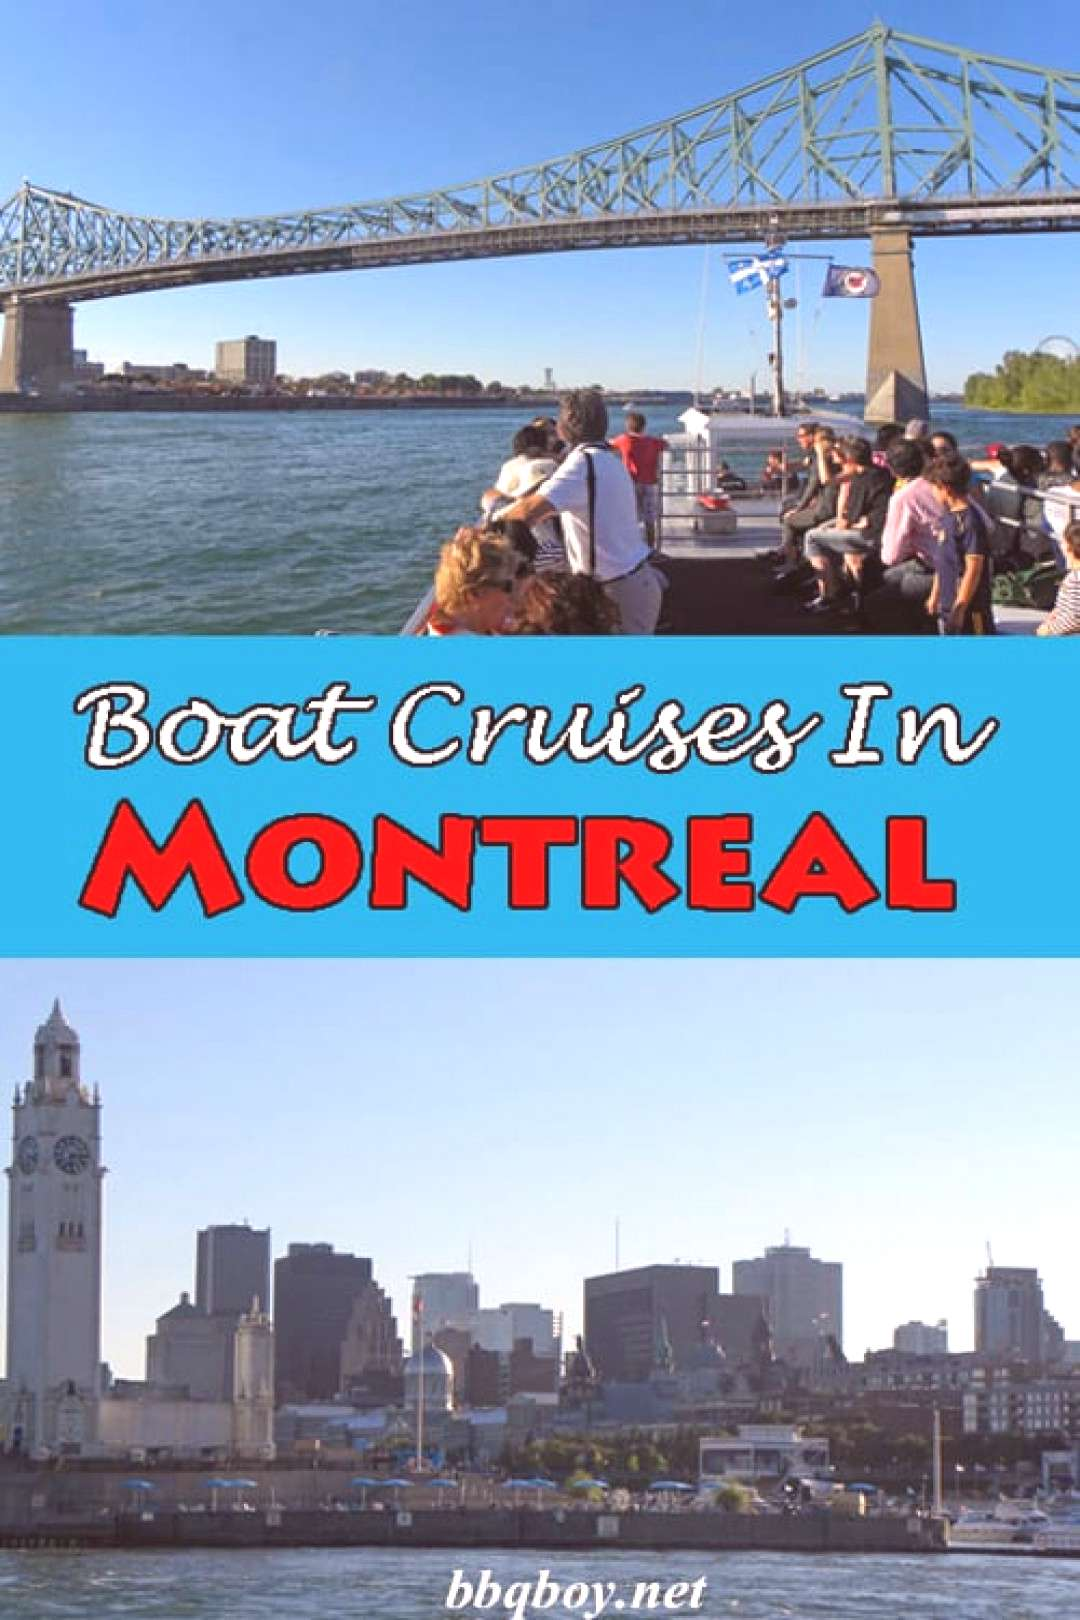 A lot of tourists coming to Montreal decide to take a boat cruise to see the city from a different